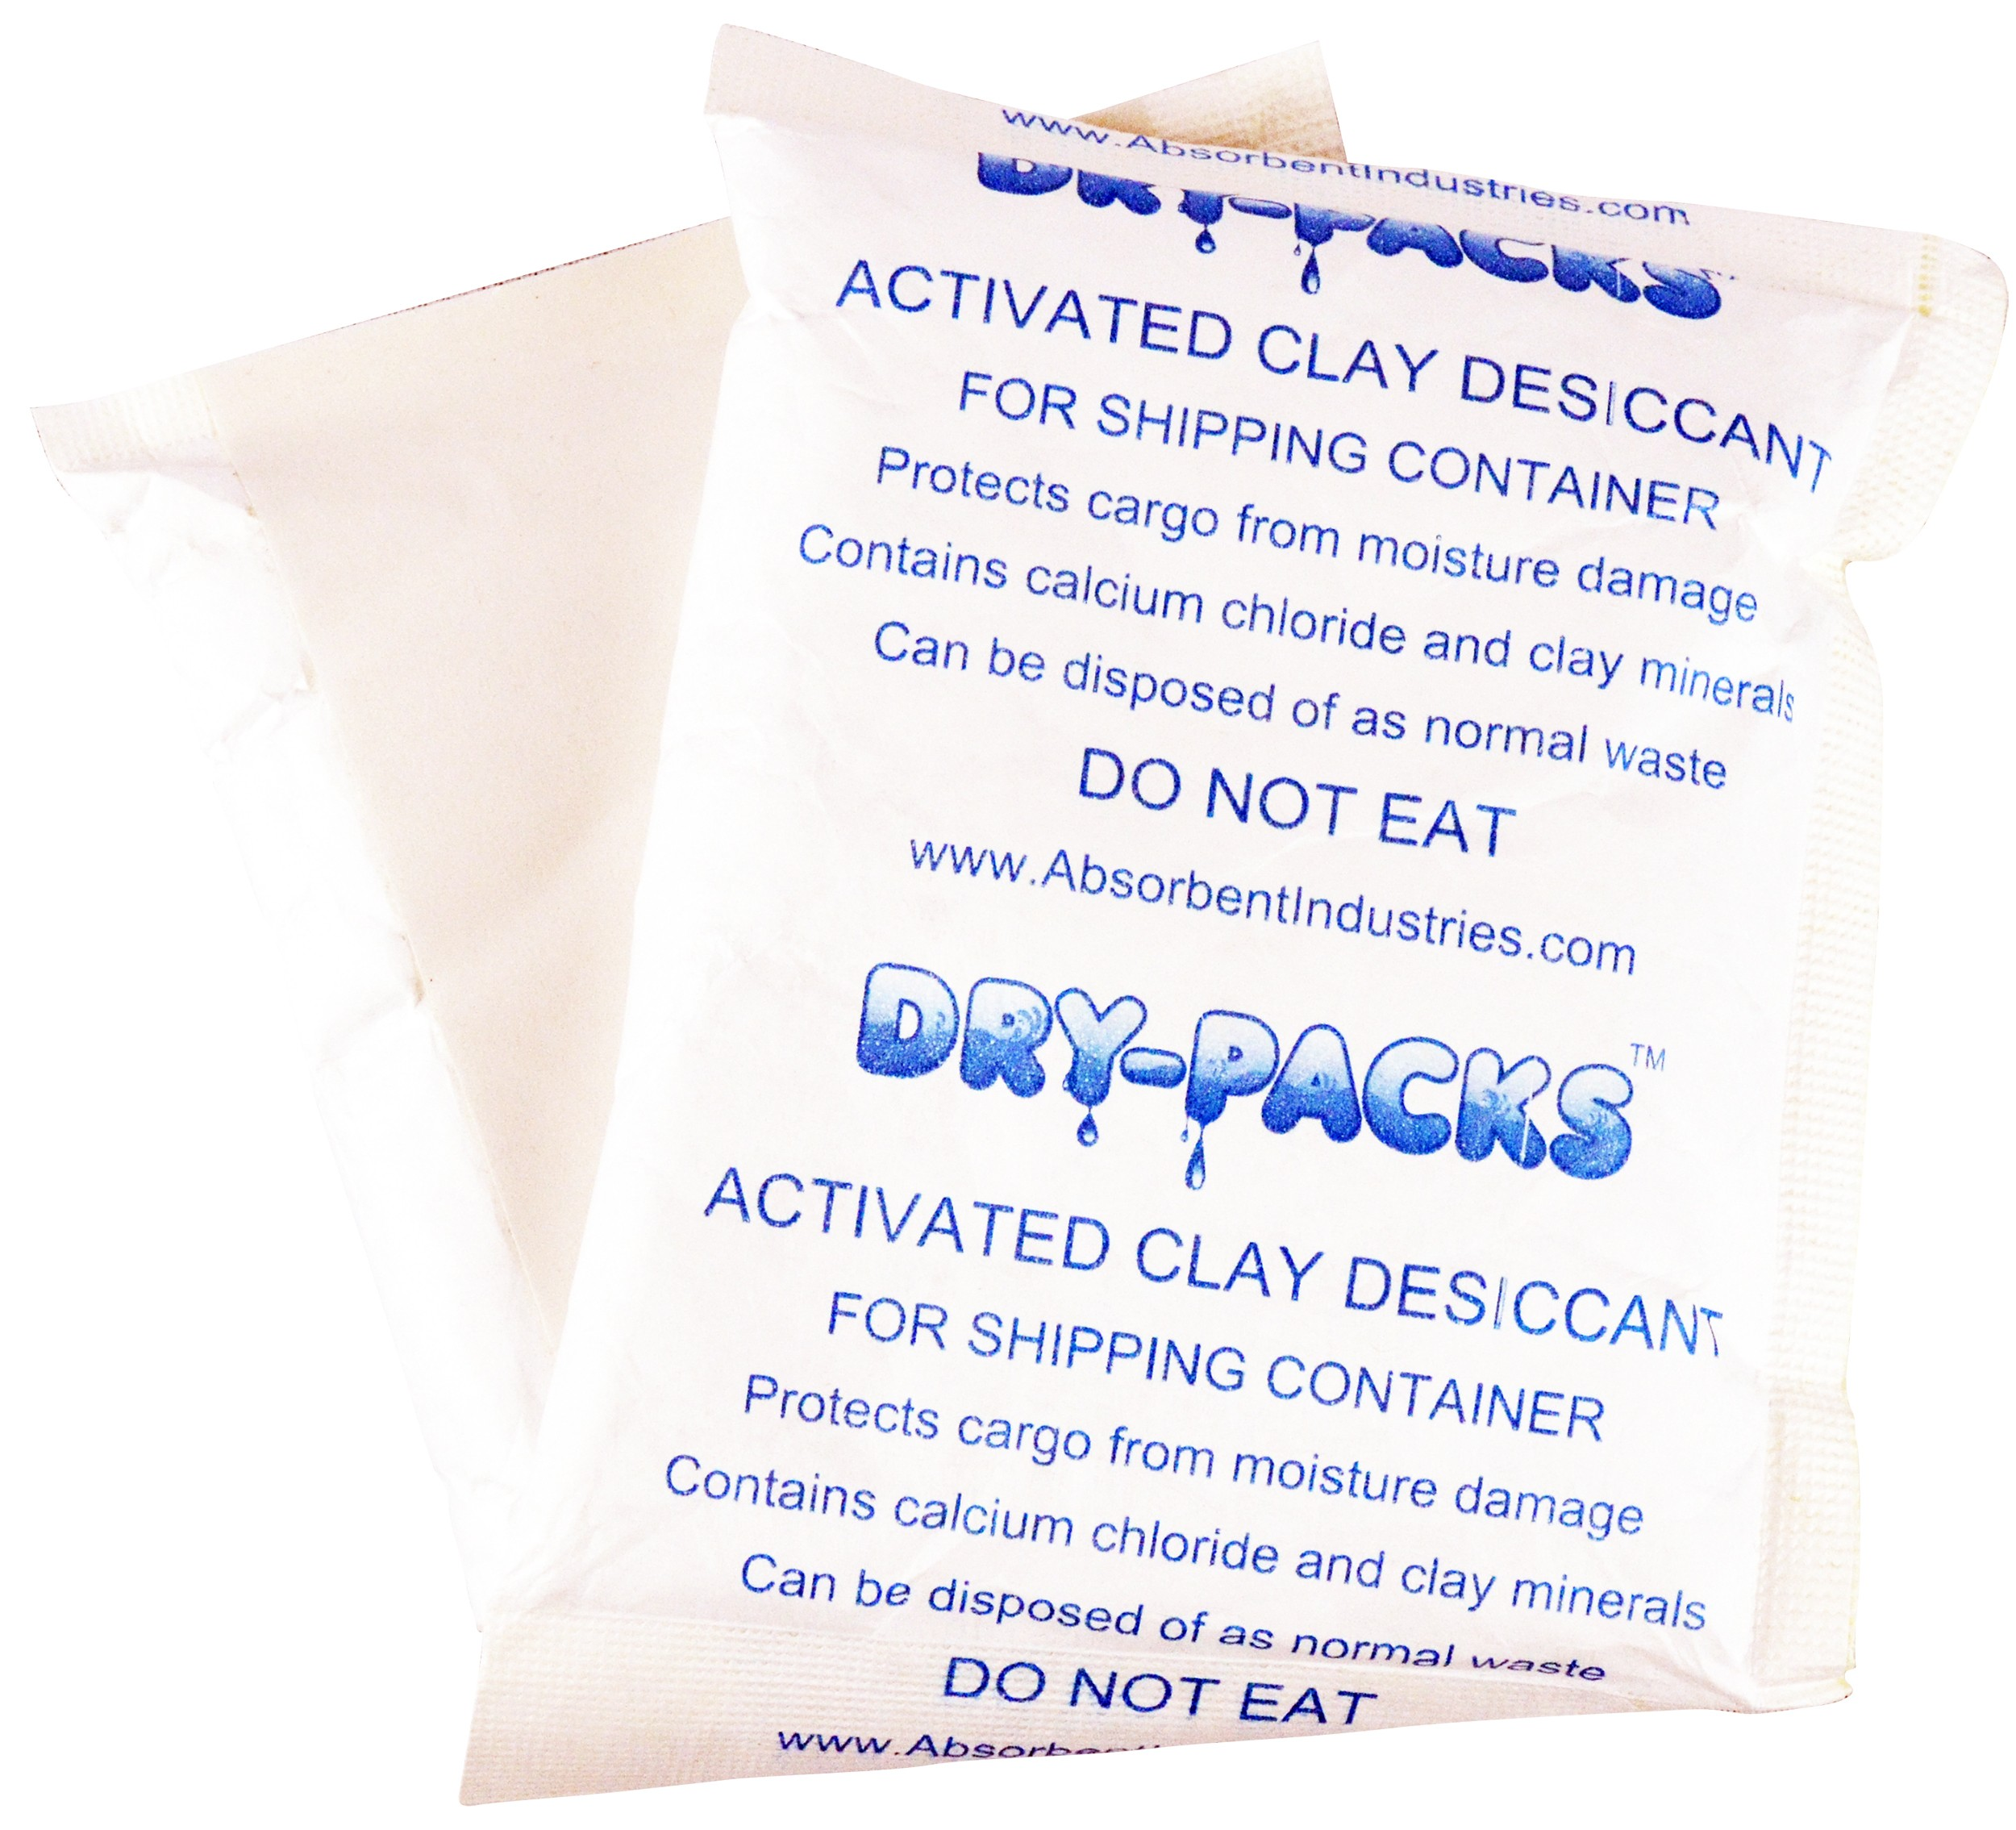 300 Gram Desiccant Packet With Adhesive Backing